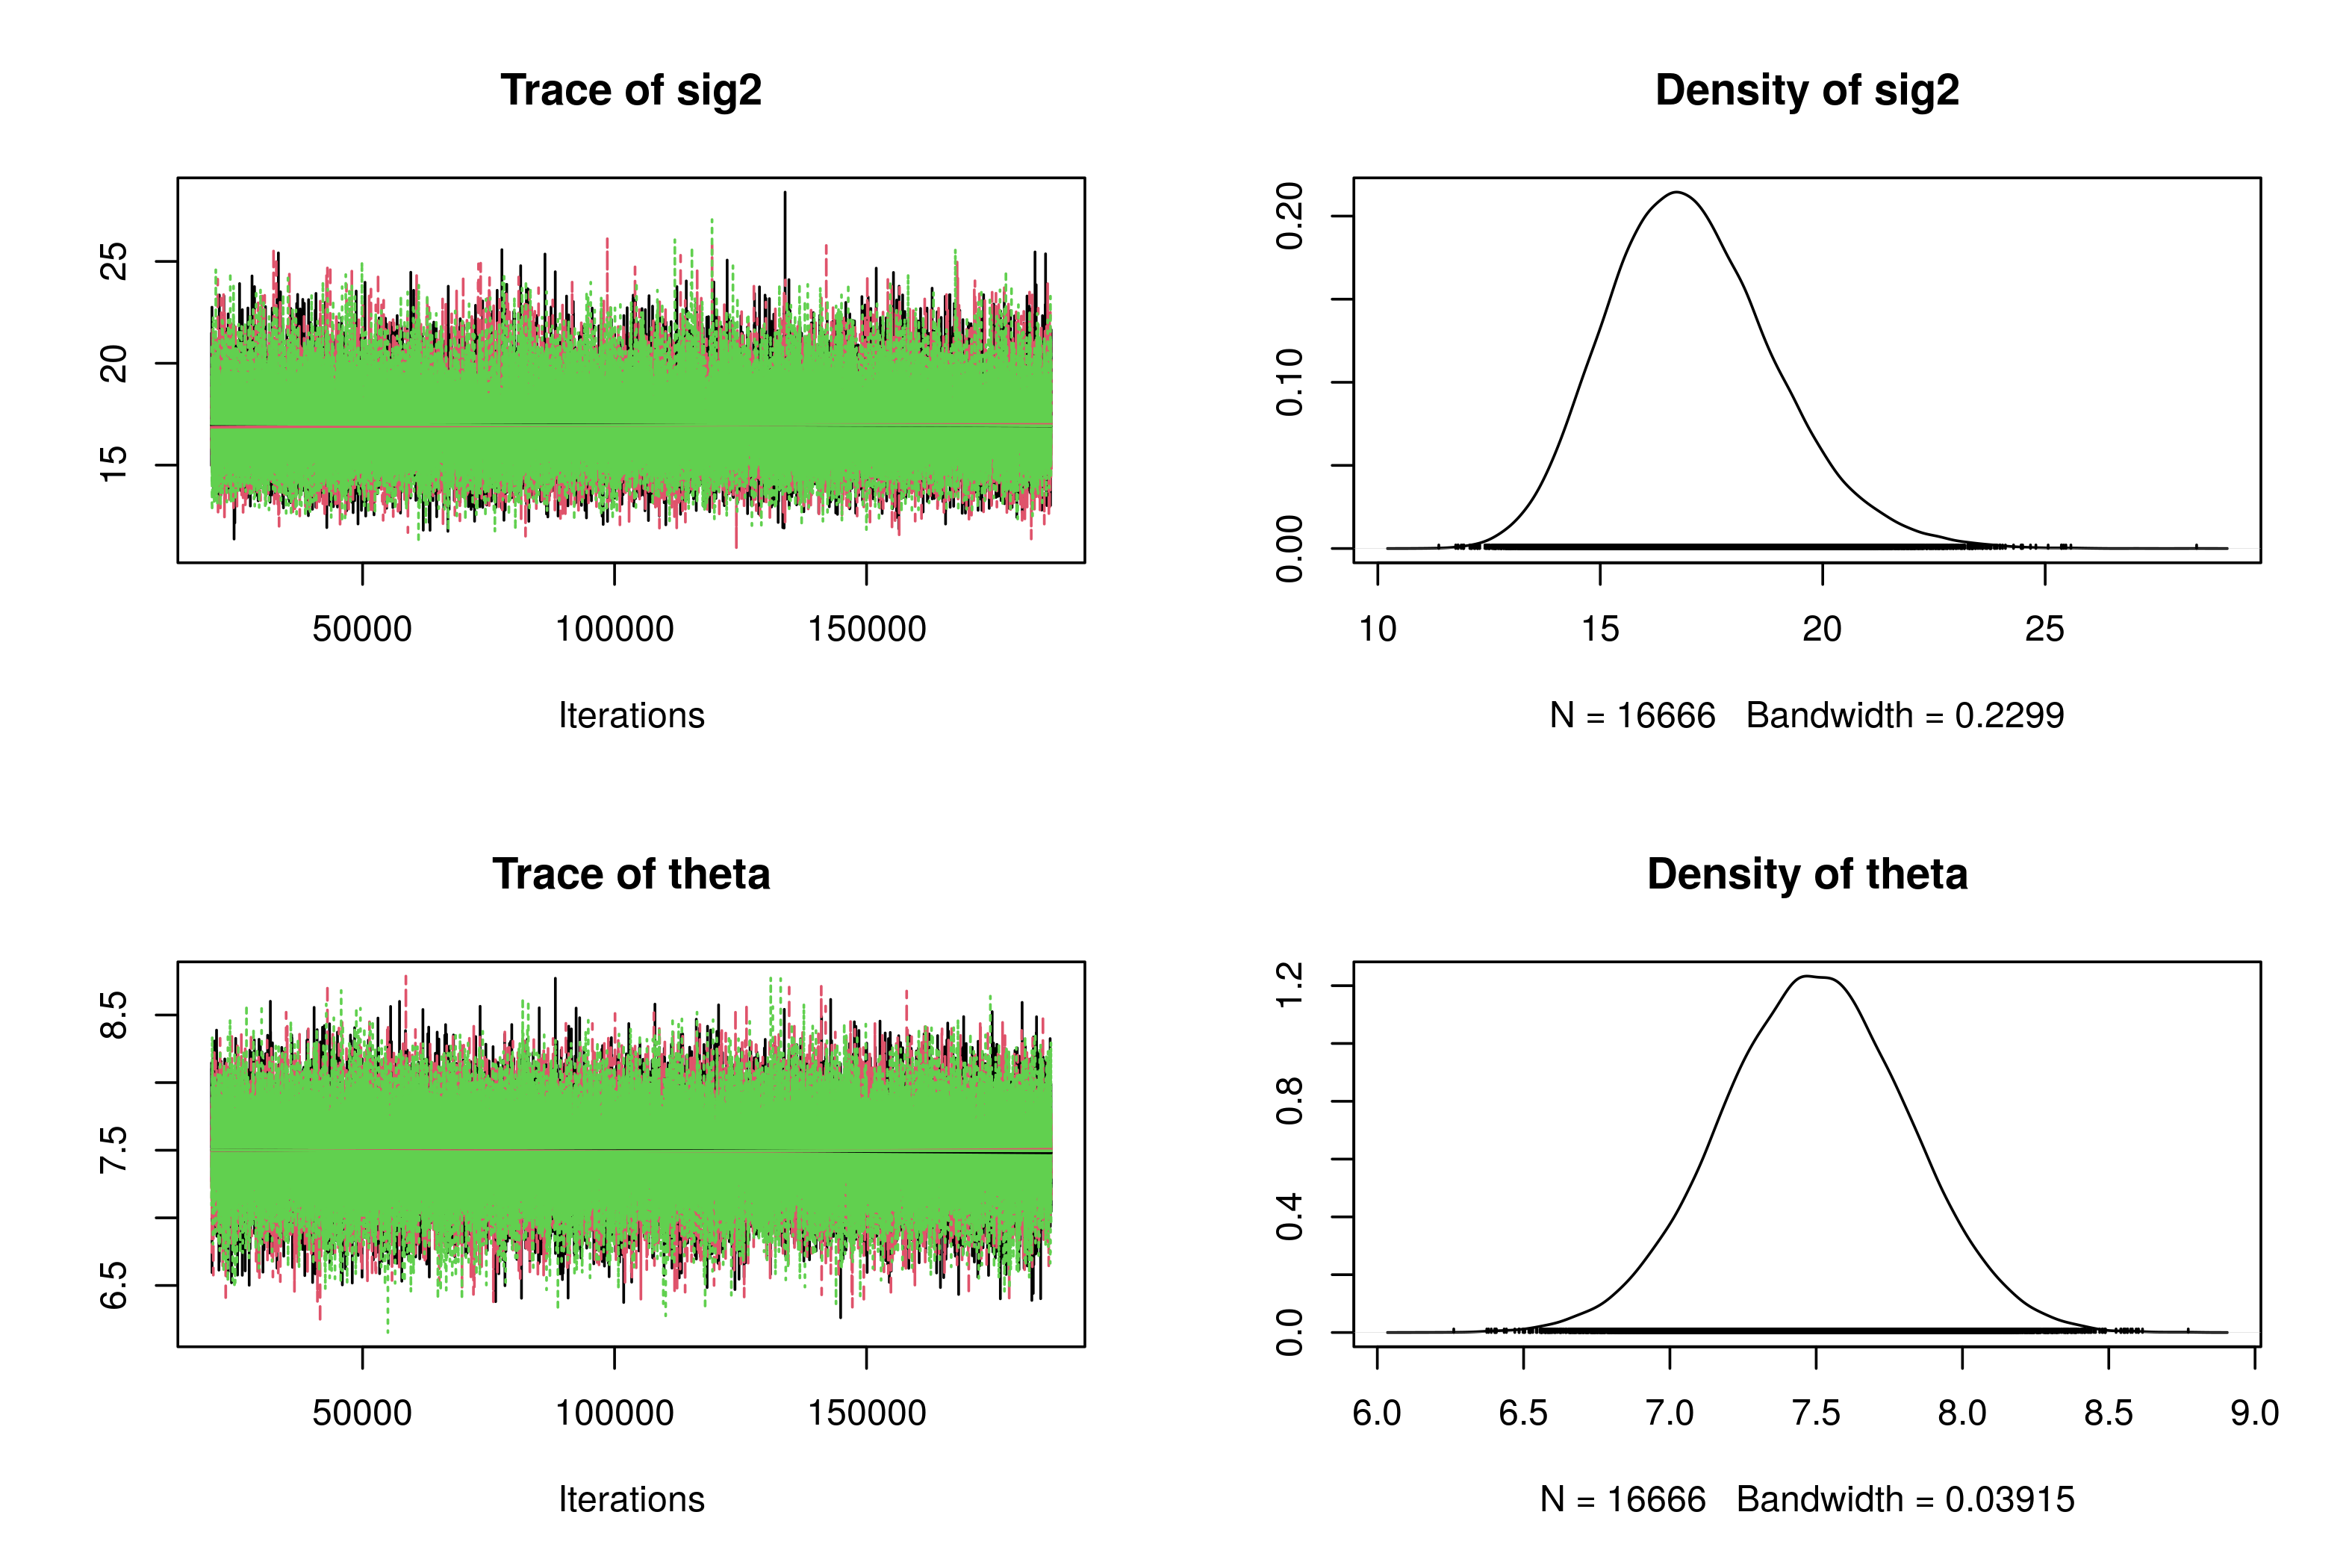 Trace plots and posterior densities for Model 1.